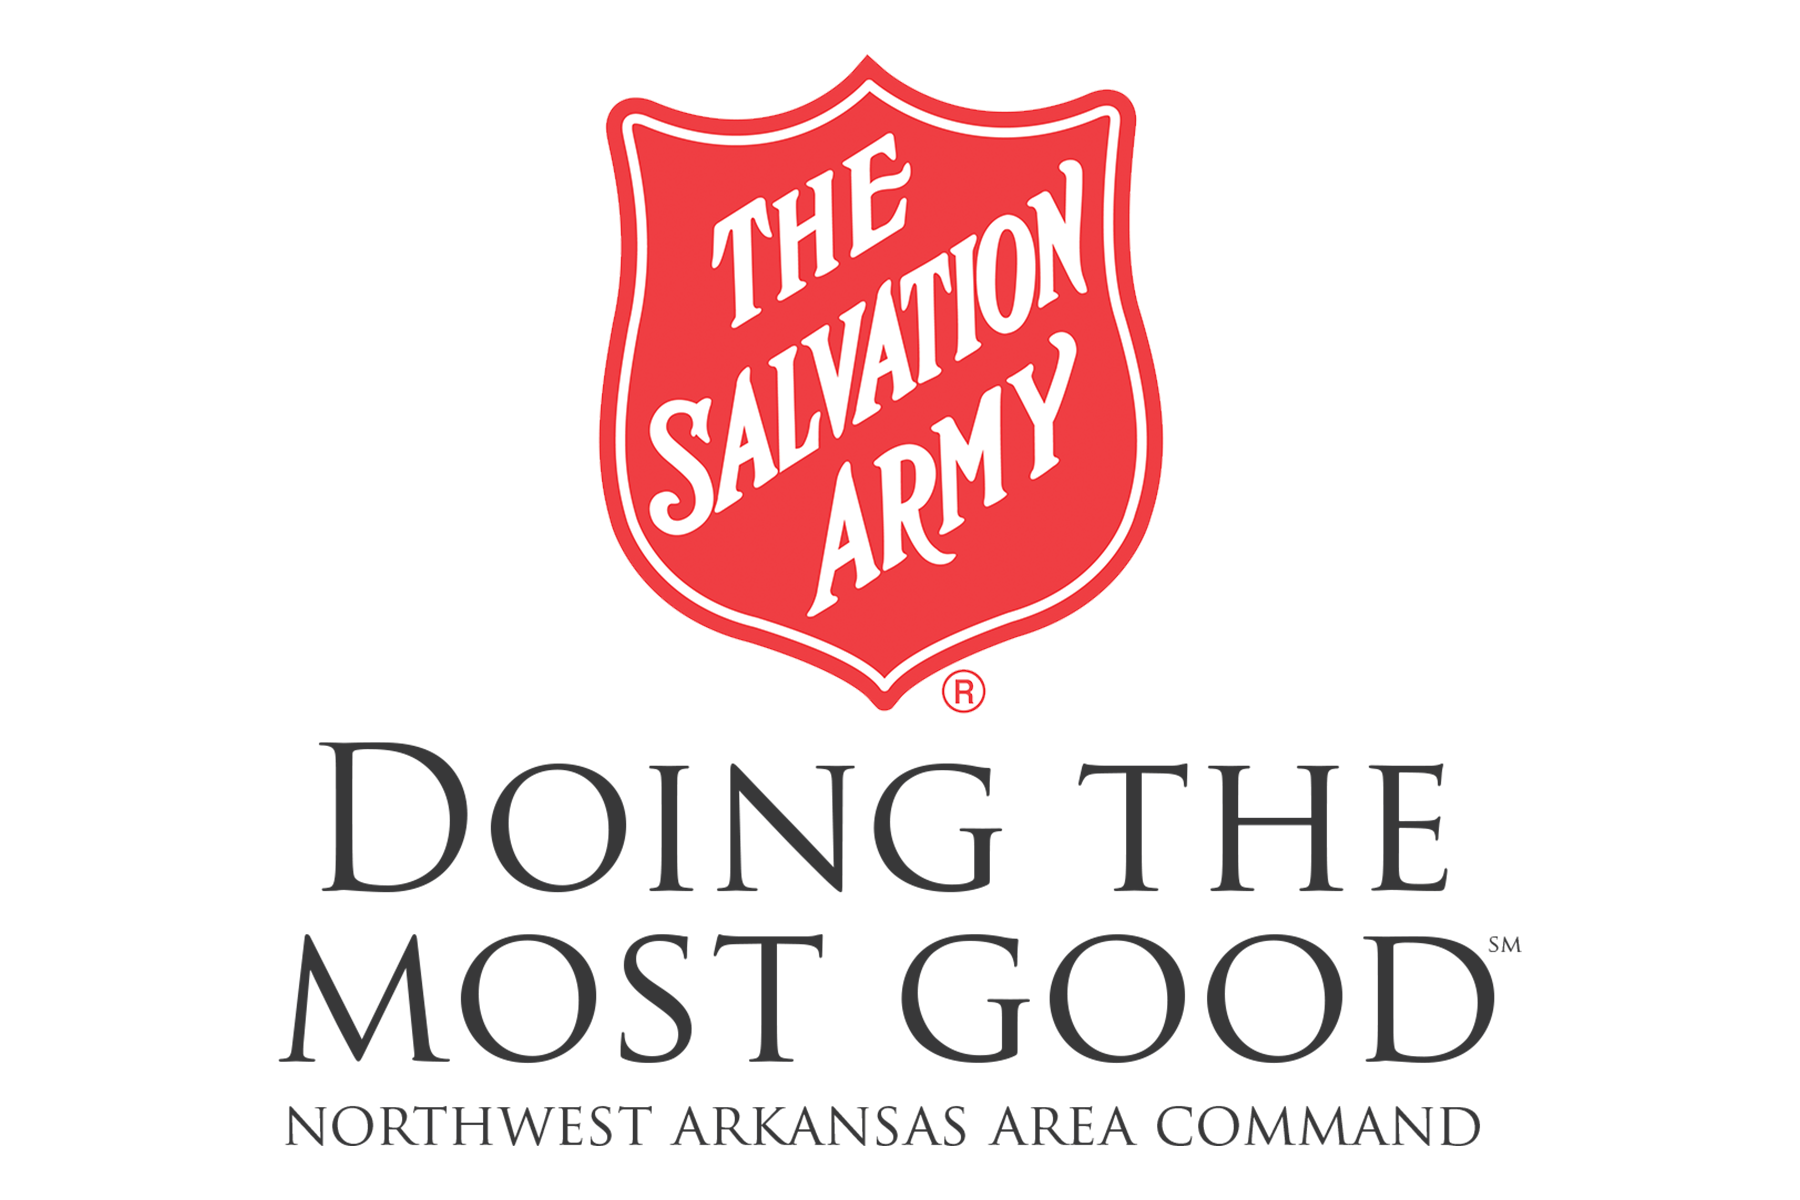 salvation army logo_1494885951807.png